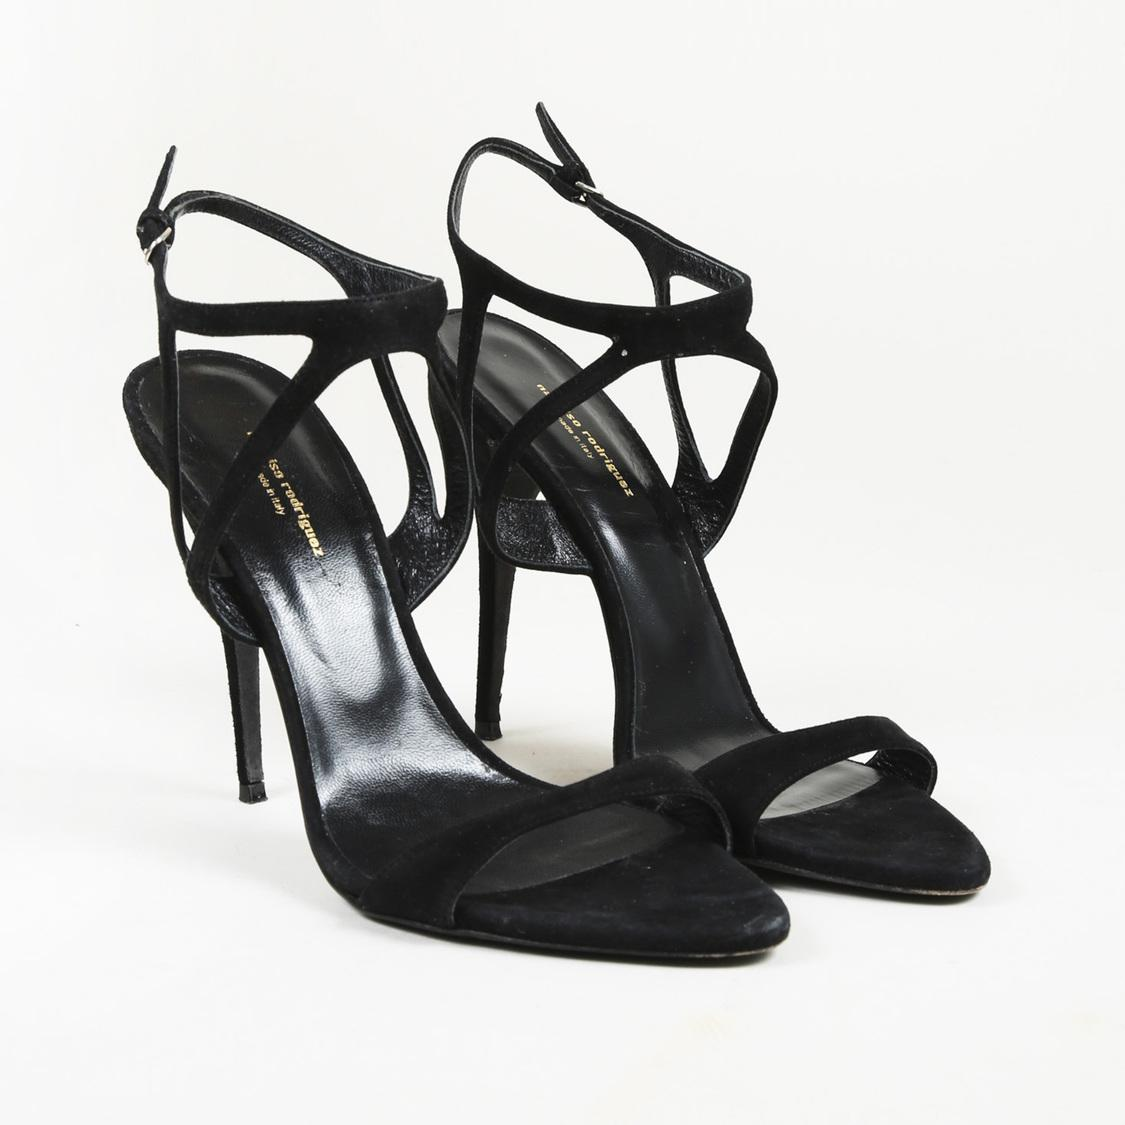 886753ece2f46 Narciso Rodriguez Black Suede Strappy Sandals in Black - Lyst